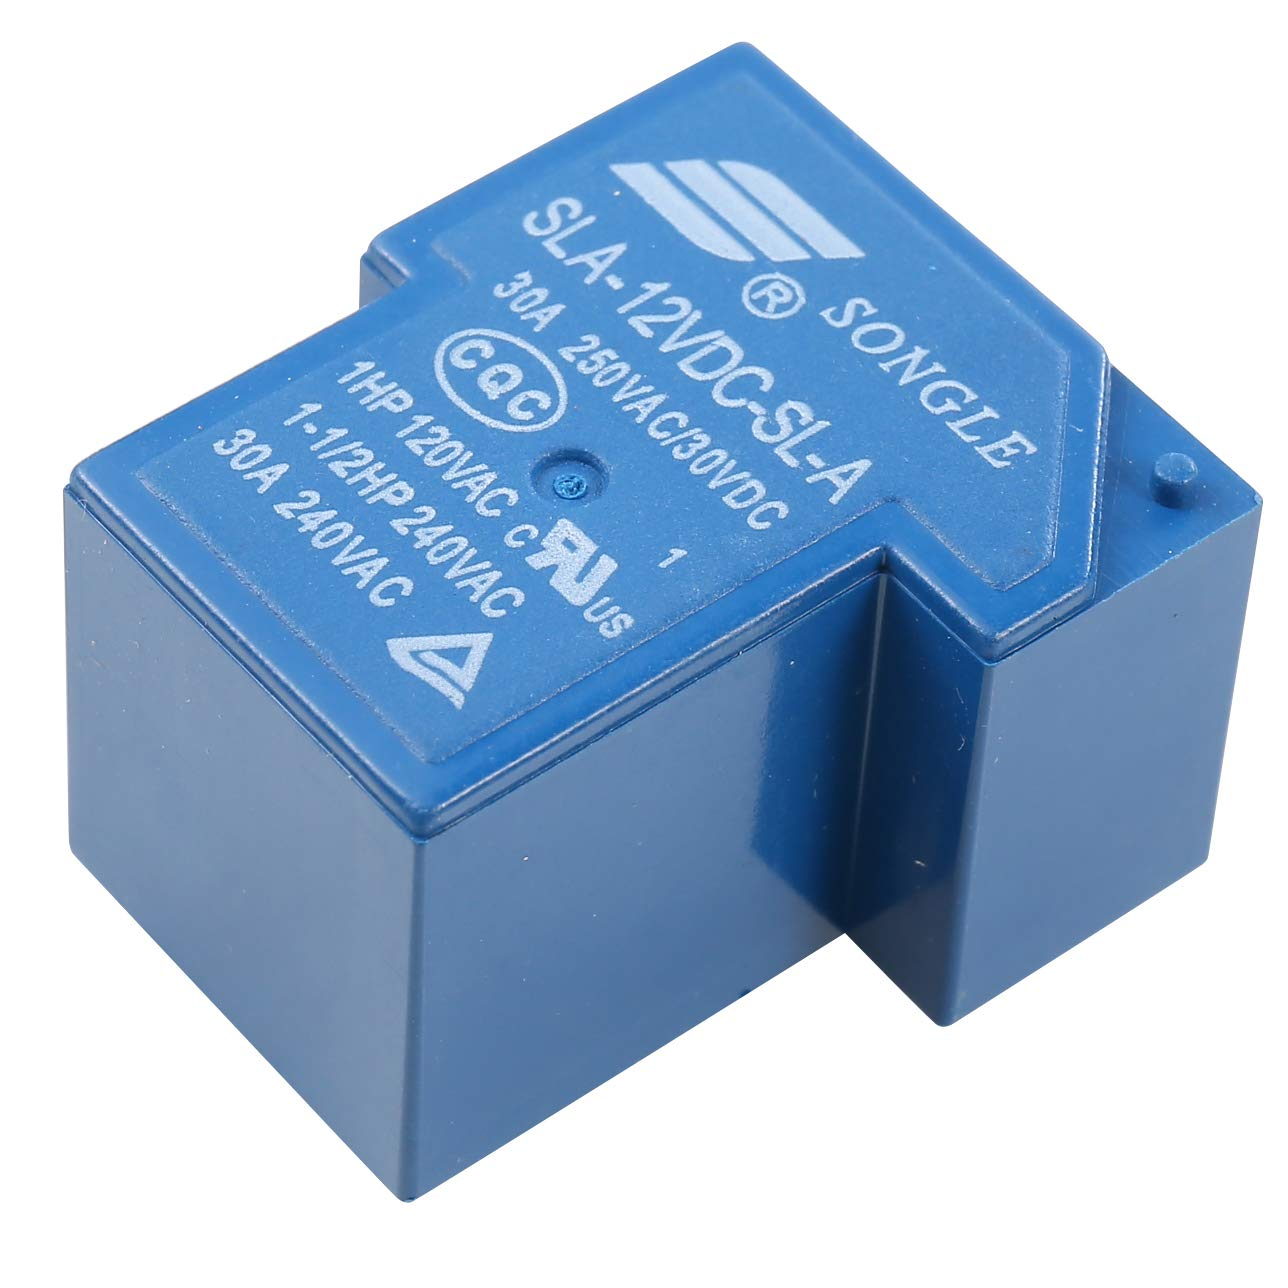 HWMATE DC 5V 30A Power Relay PCB Mount 5 Pins Normally Open Type 10 Pack